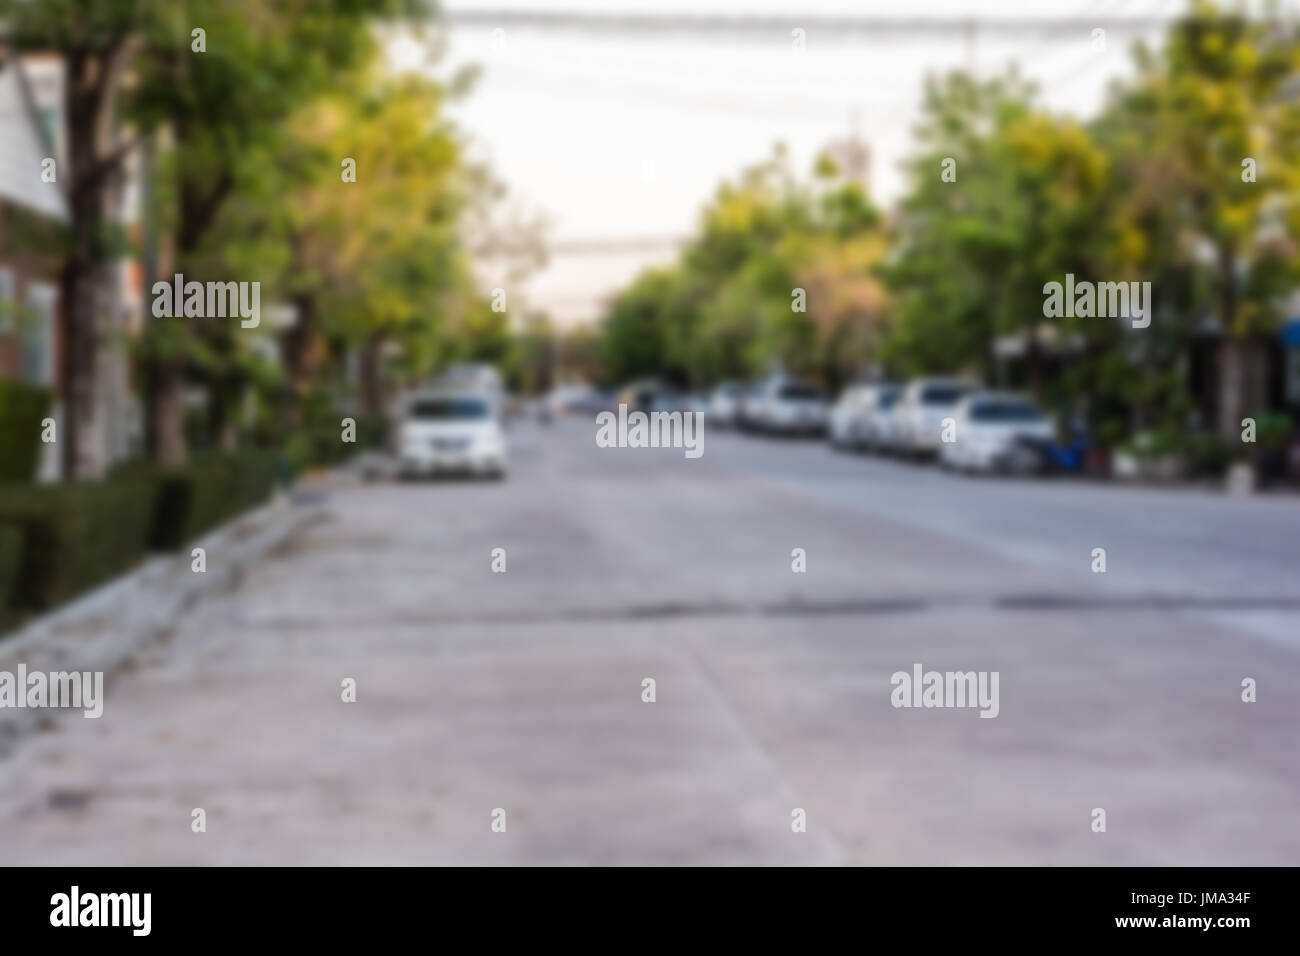 Blur image of road and house in the village for background usage with copy space. - Stock Image